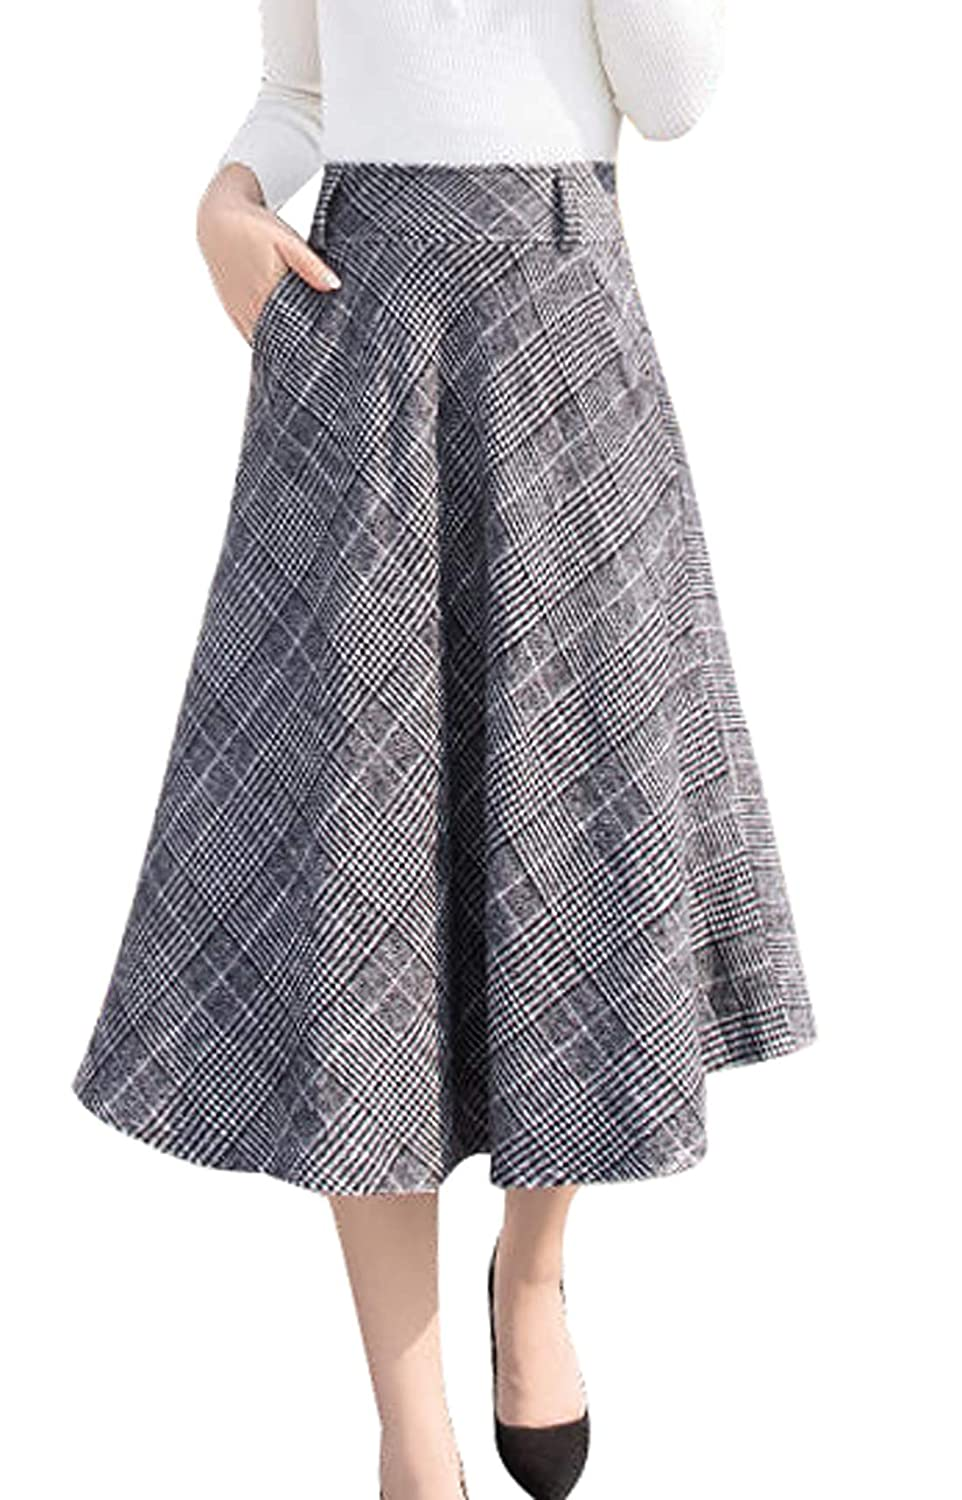 b45eae525 chouyatou Women's High Waisted A-Line Pleated Midi Plaid Wool Skirt with  Pocket at Amazon Women's Clothing store: